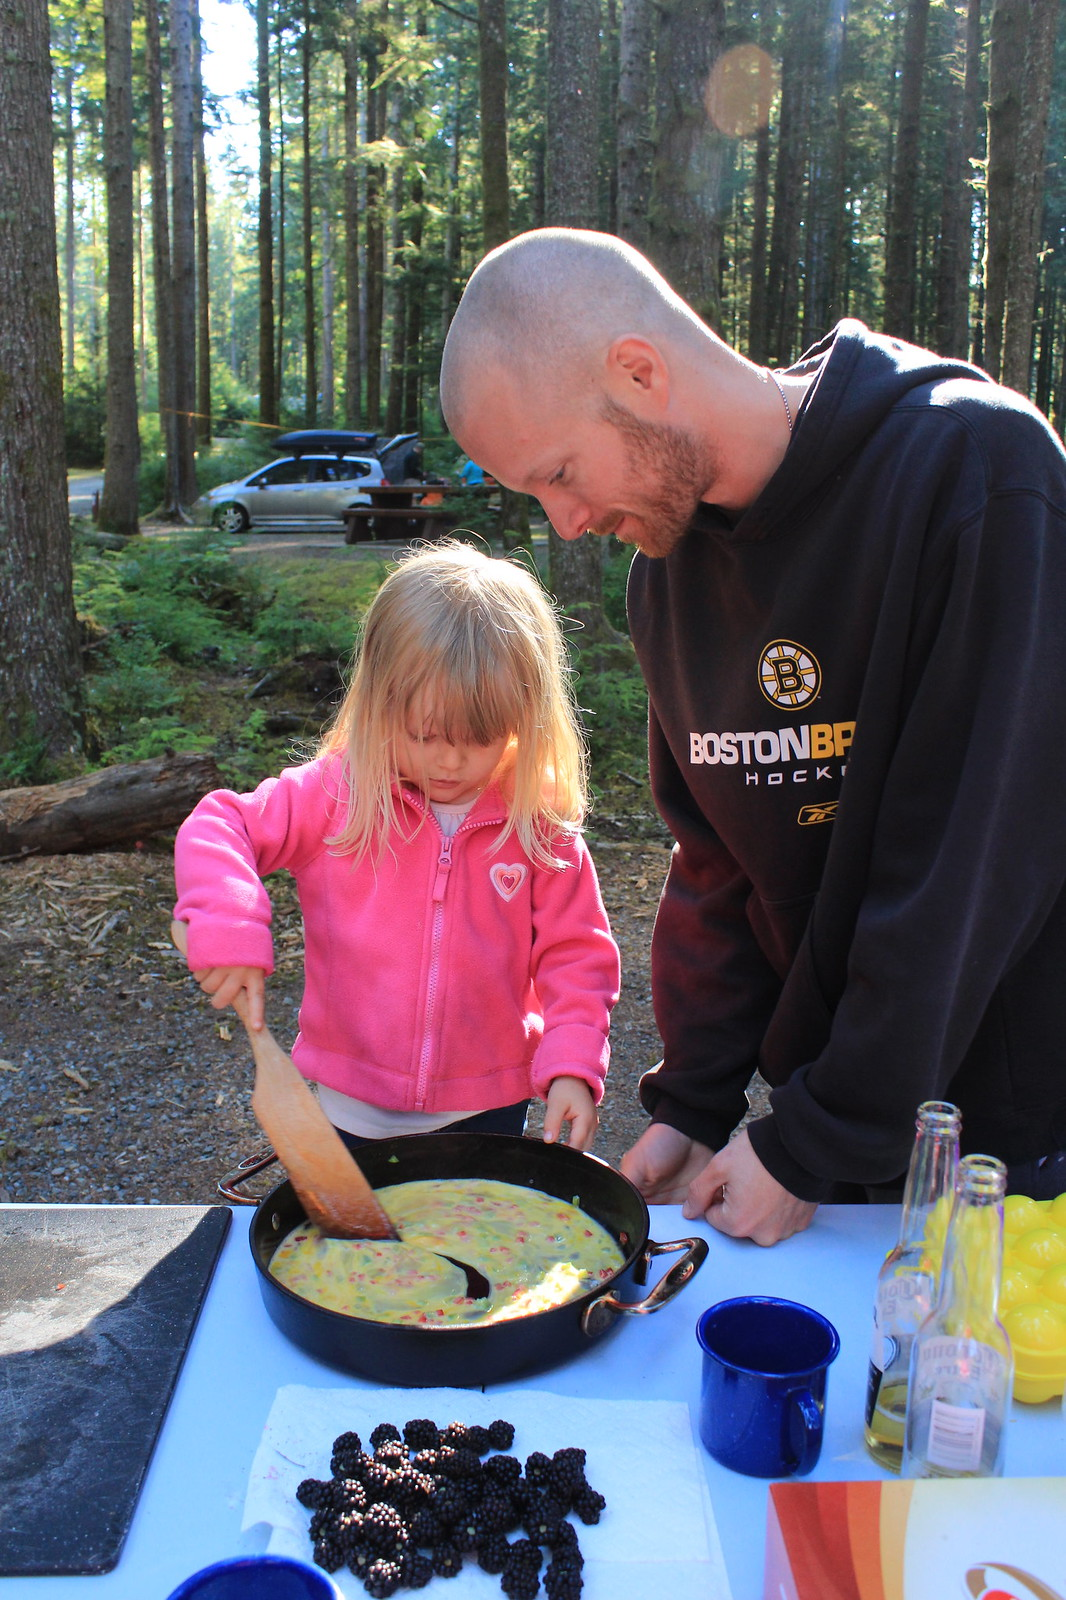 Camping August 2014